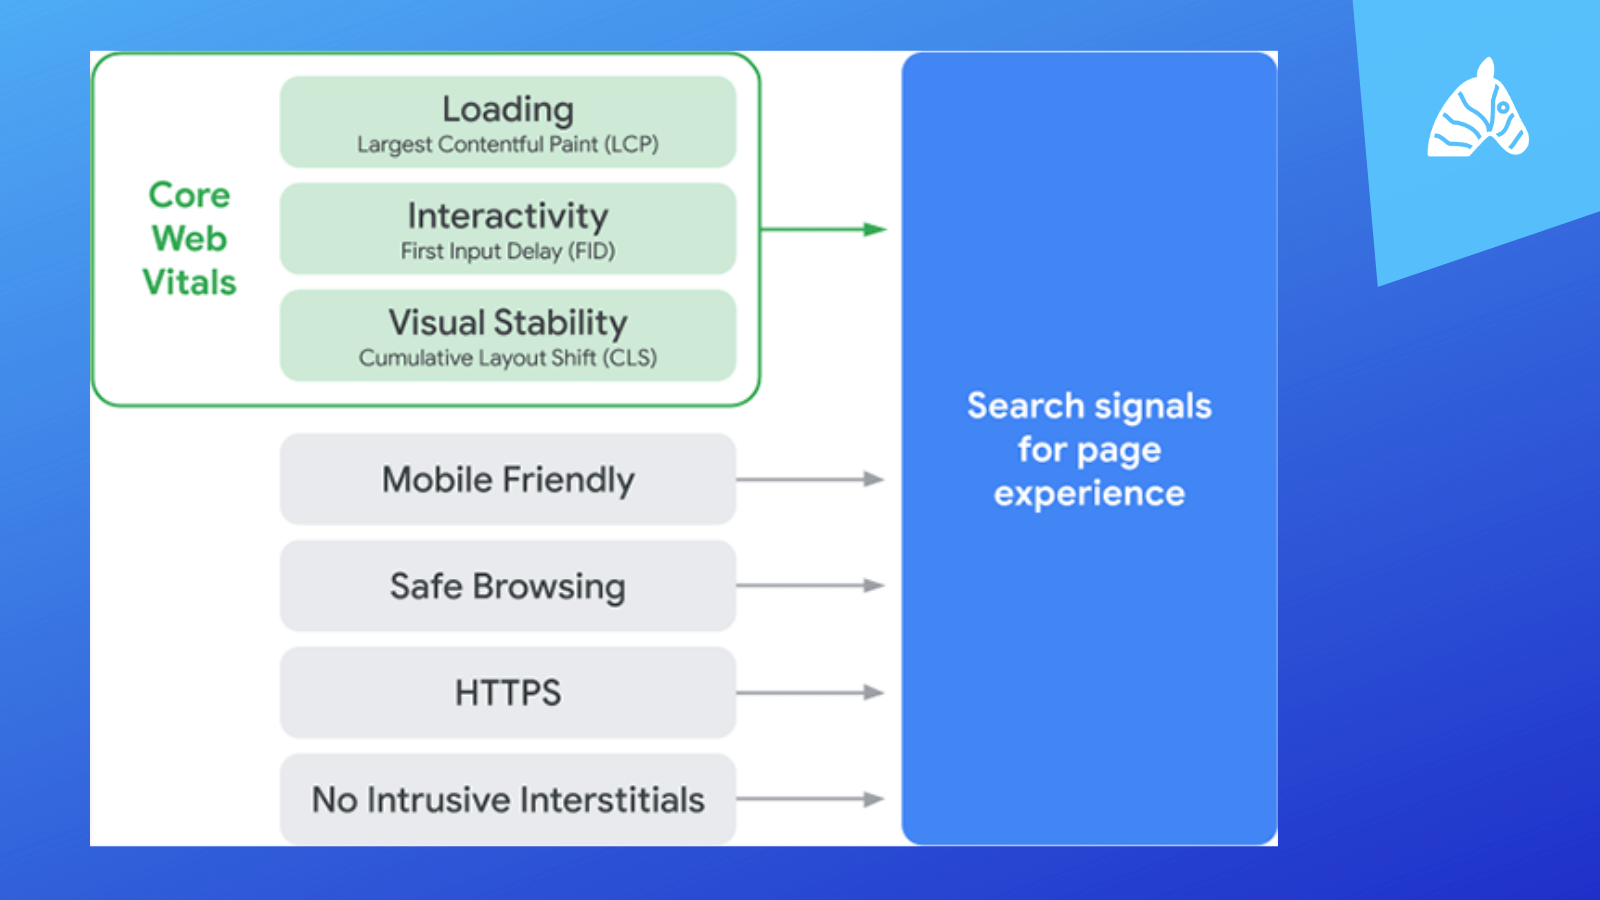 A breakdown of the Google page experience elements